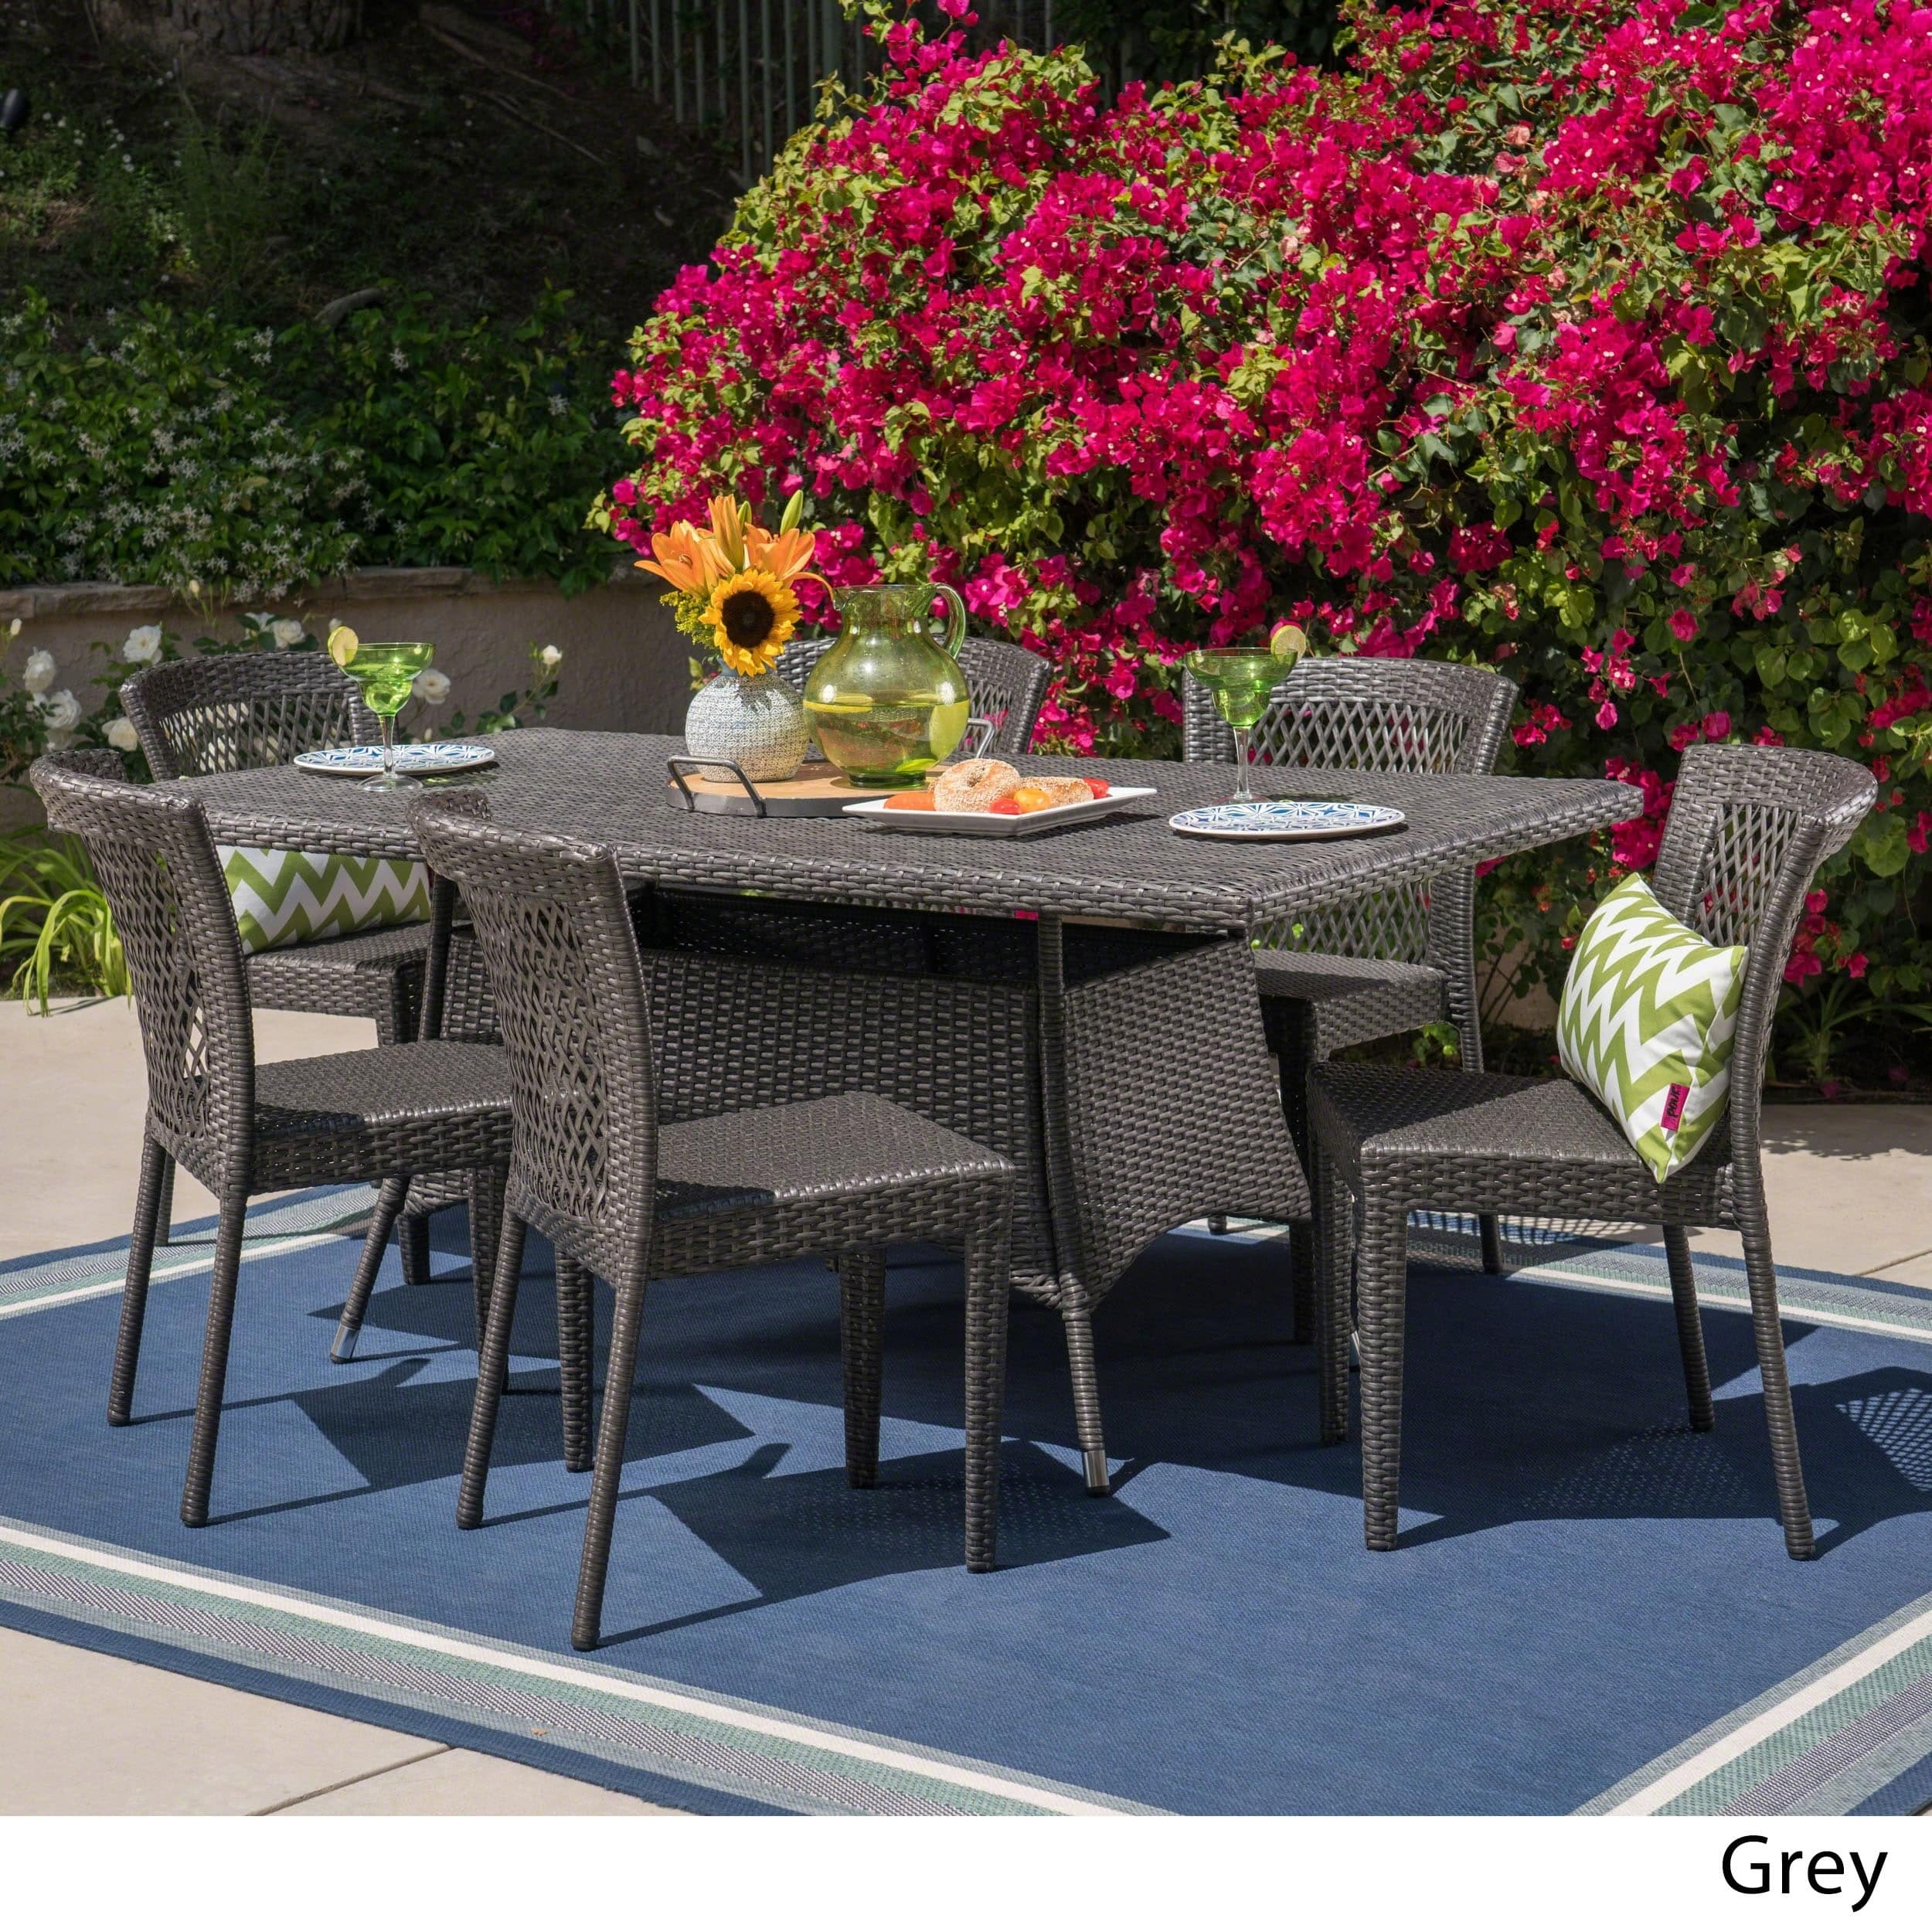 Christopher Knight Home Rafael Outdoor 7-piece Wicker Dining Set by